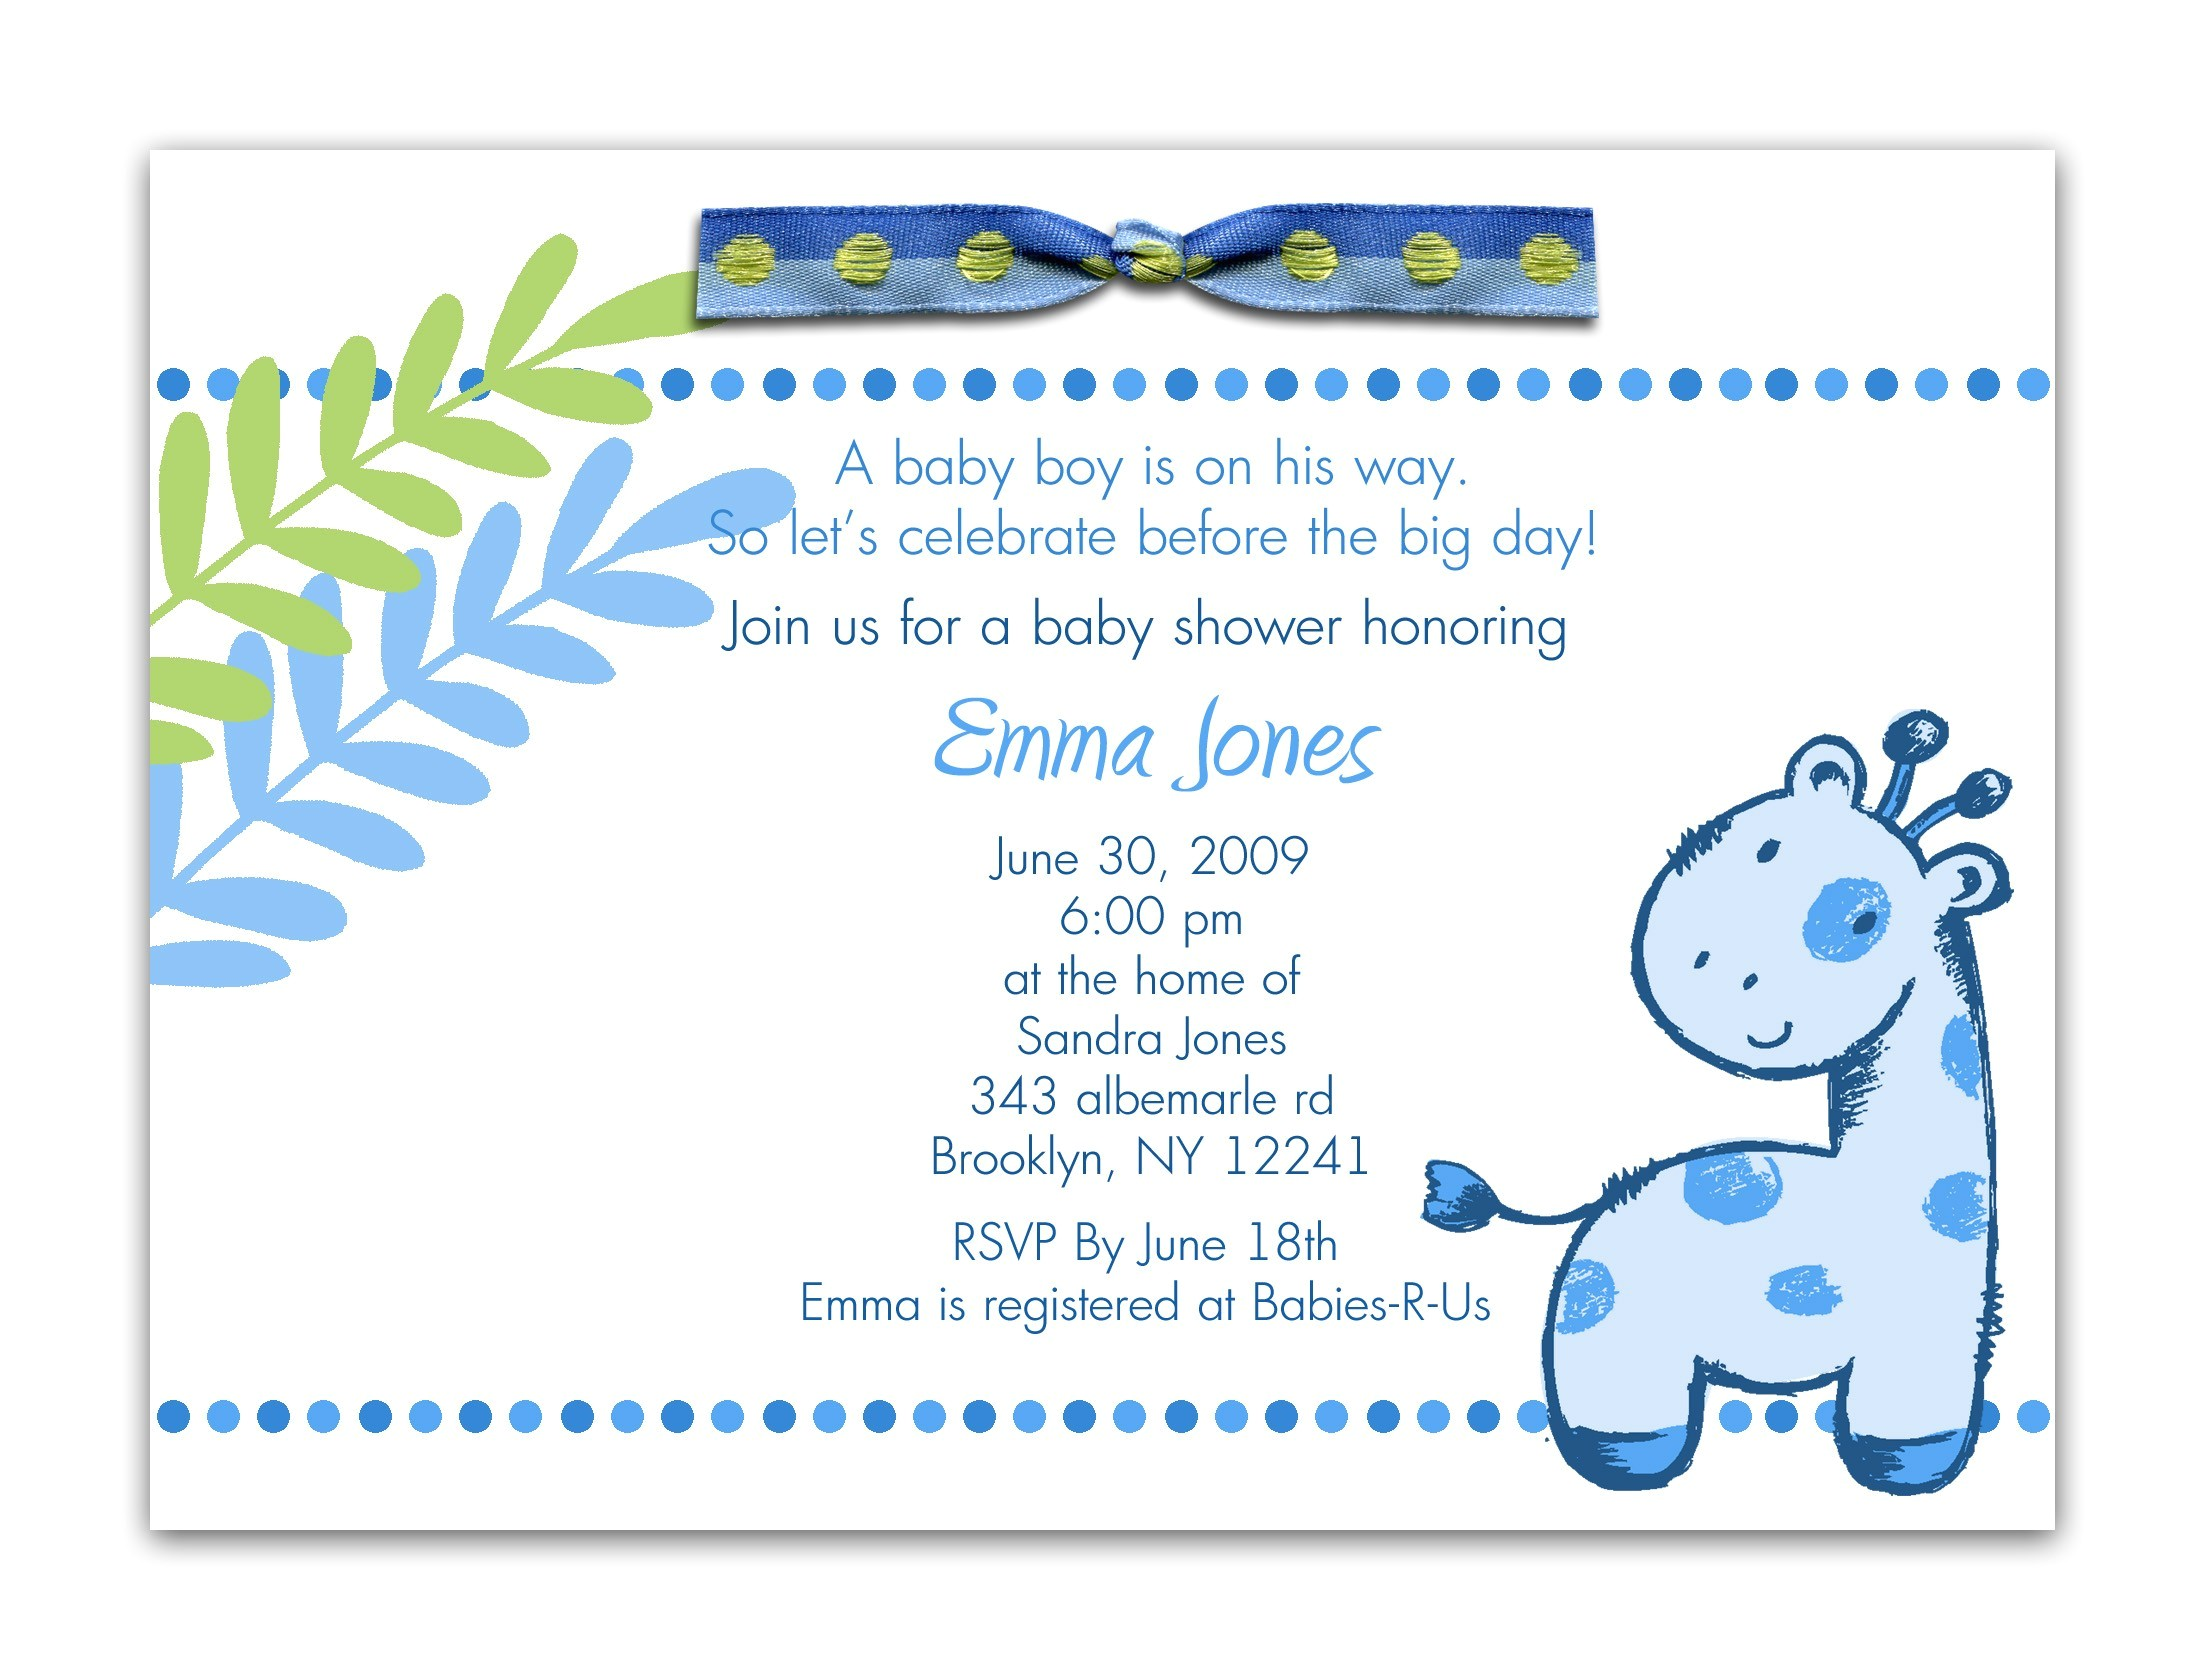 Sayings for Baby Shower Invites Baby Shower Invitation Wording for A Boy theruntime Com